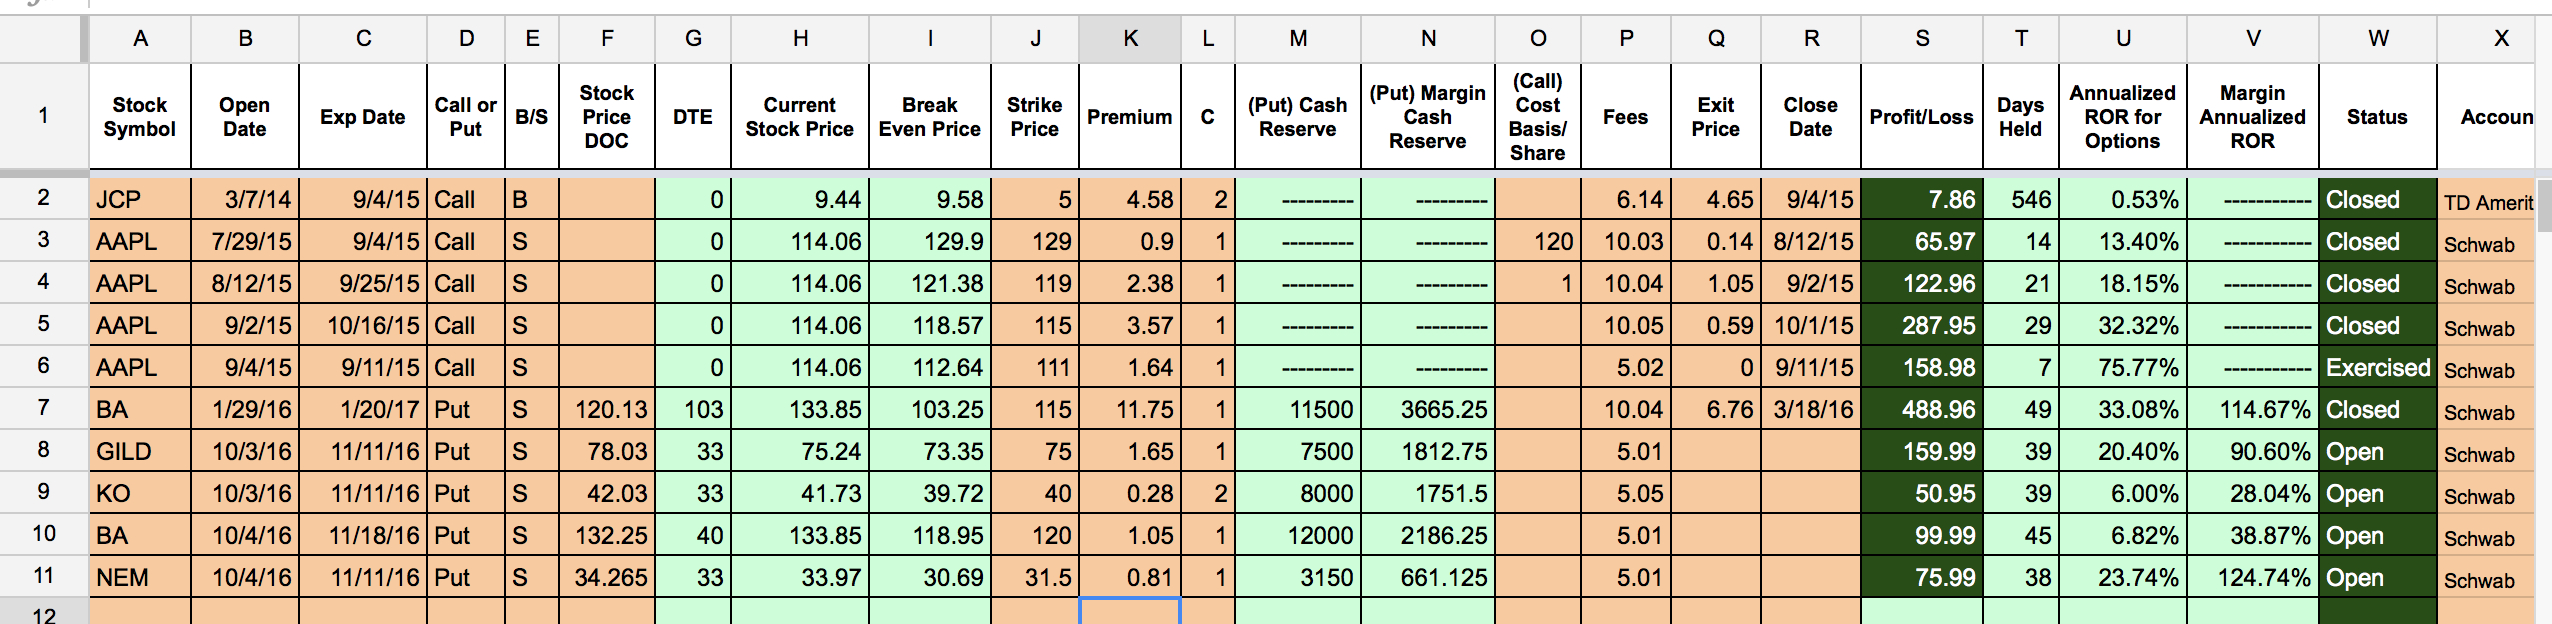 Buy To Let Portfolio Spreadsheet Intended For Options Tracker Spreadsheet – Two Investing